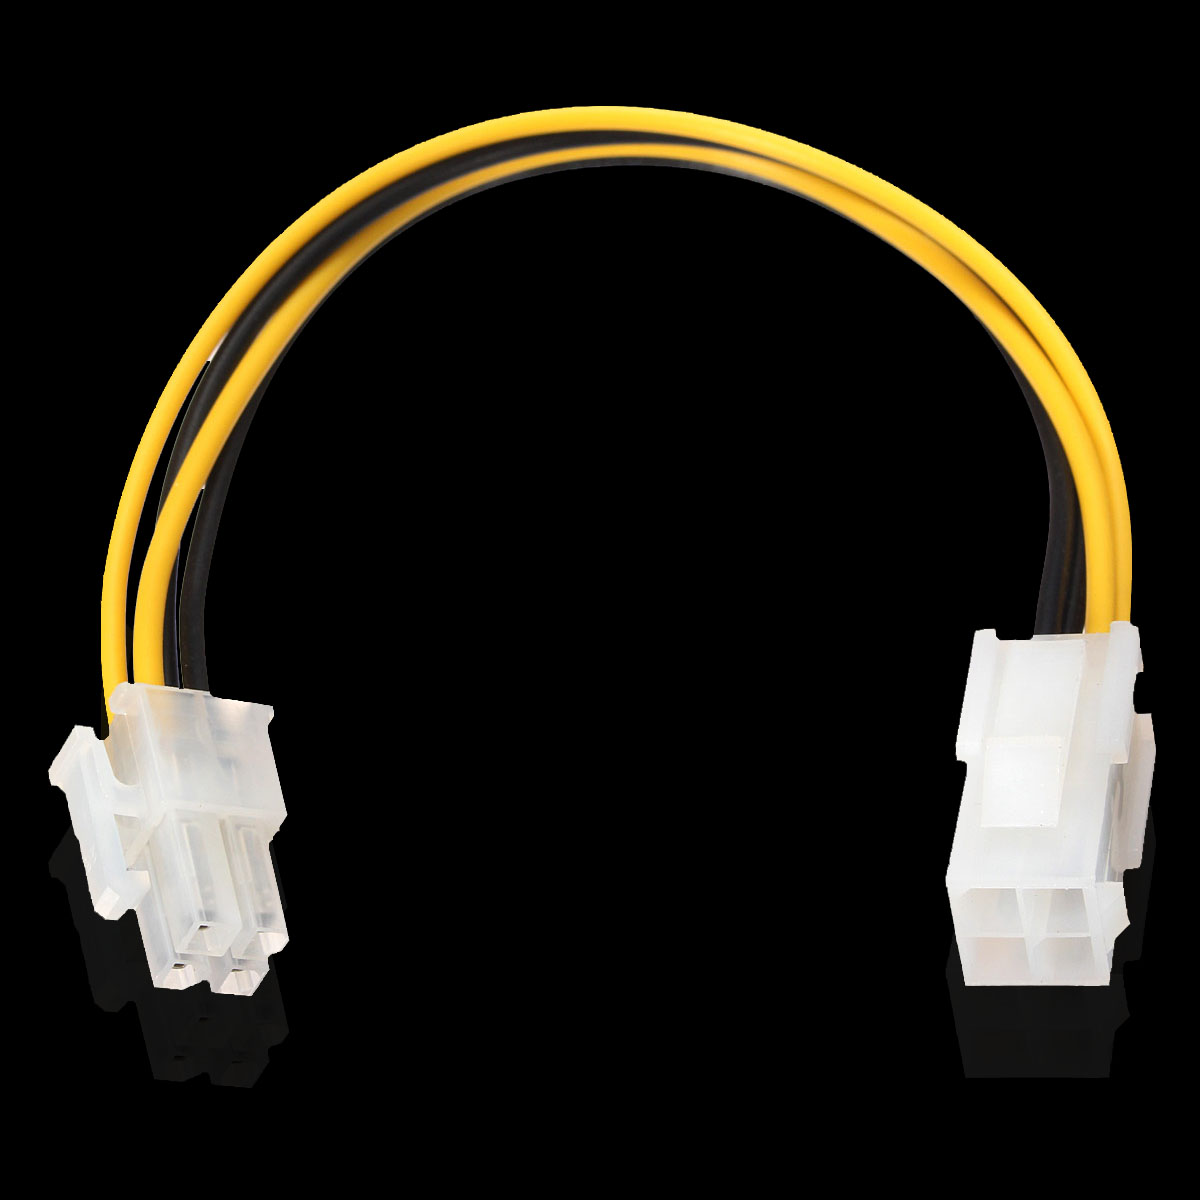 8 Inch 20cm ATX 4 Pin Male to Female Power Supply Cable Cord Connector Adapter